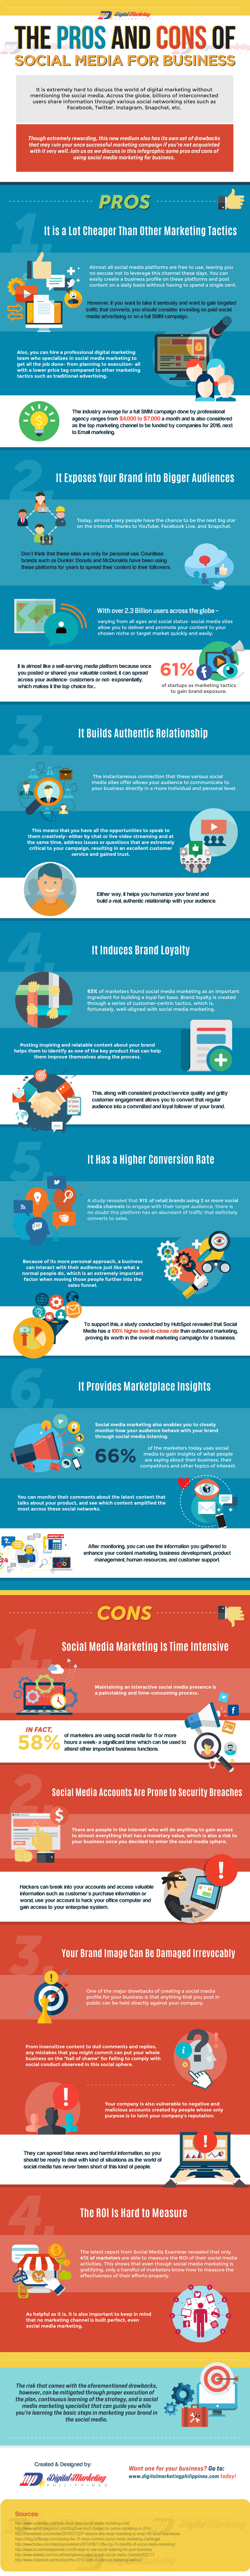 the-pros-and-cons-of-social-media-marketing-for-business